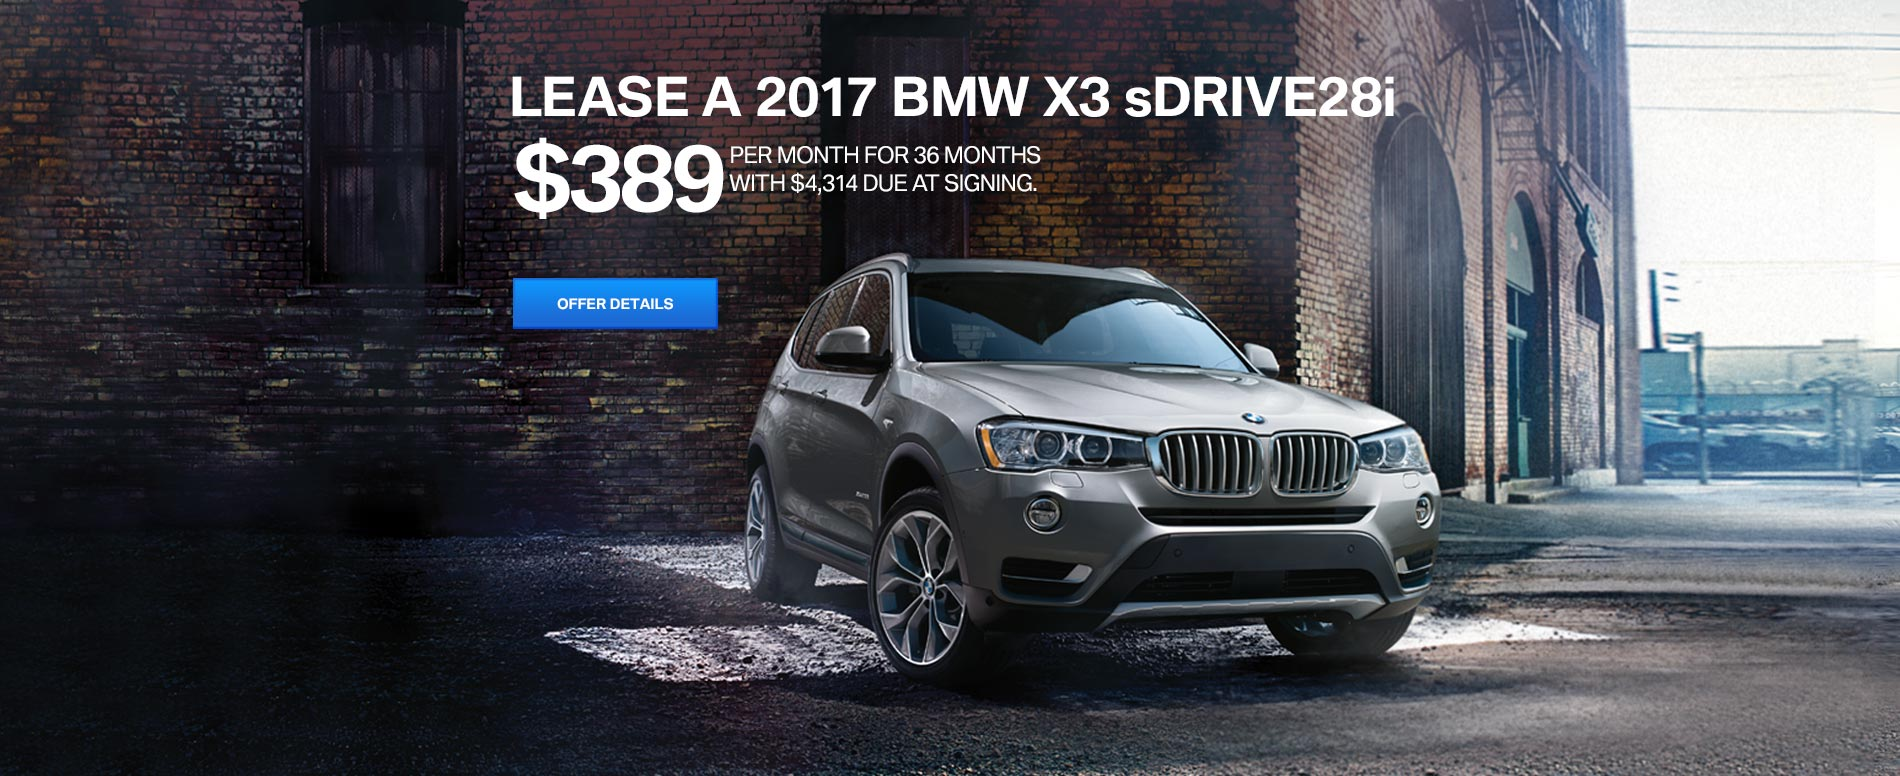 LEASE A 2017 BMW X3 sDrive28i FOR $389/MO FOR 36 MONTHS